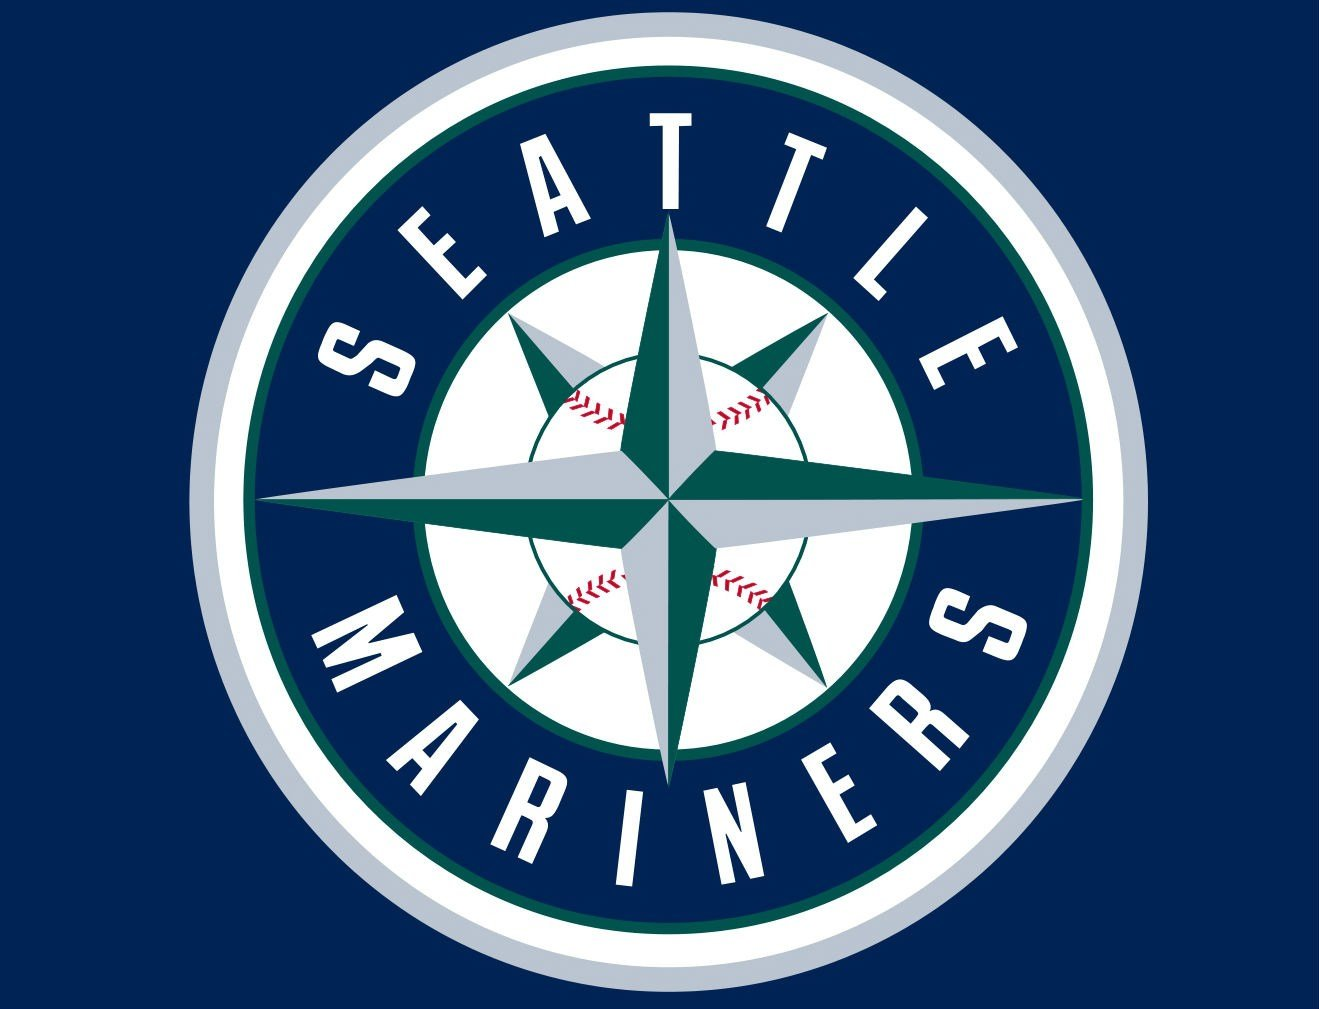 Mariners lose their 4th straight game